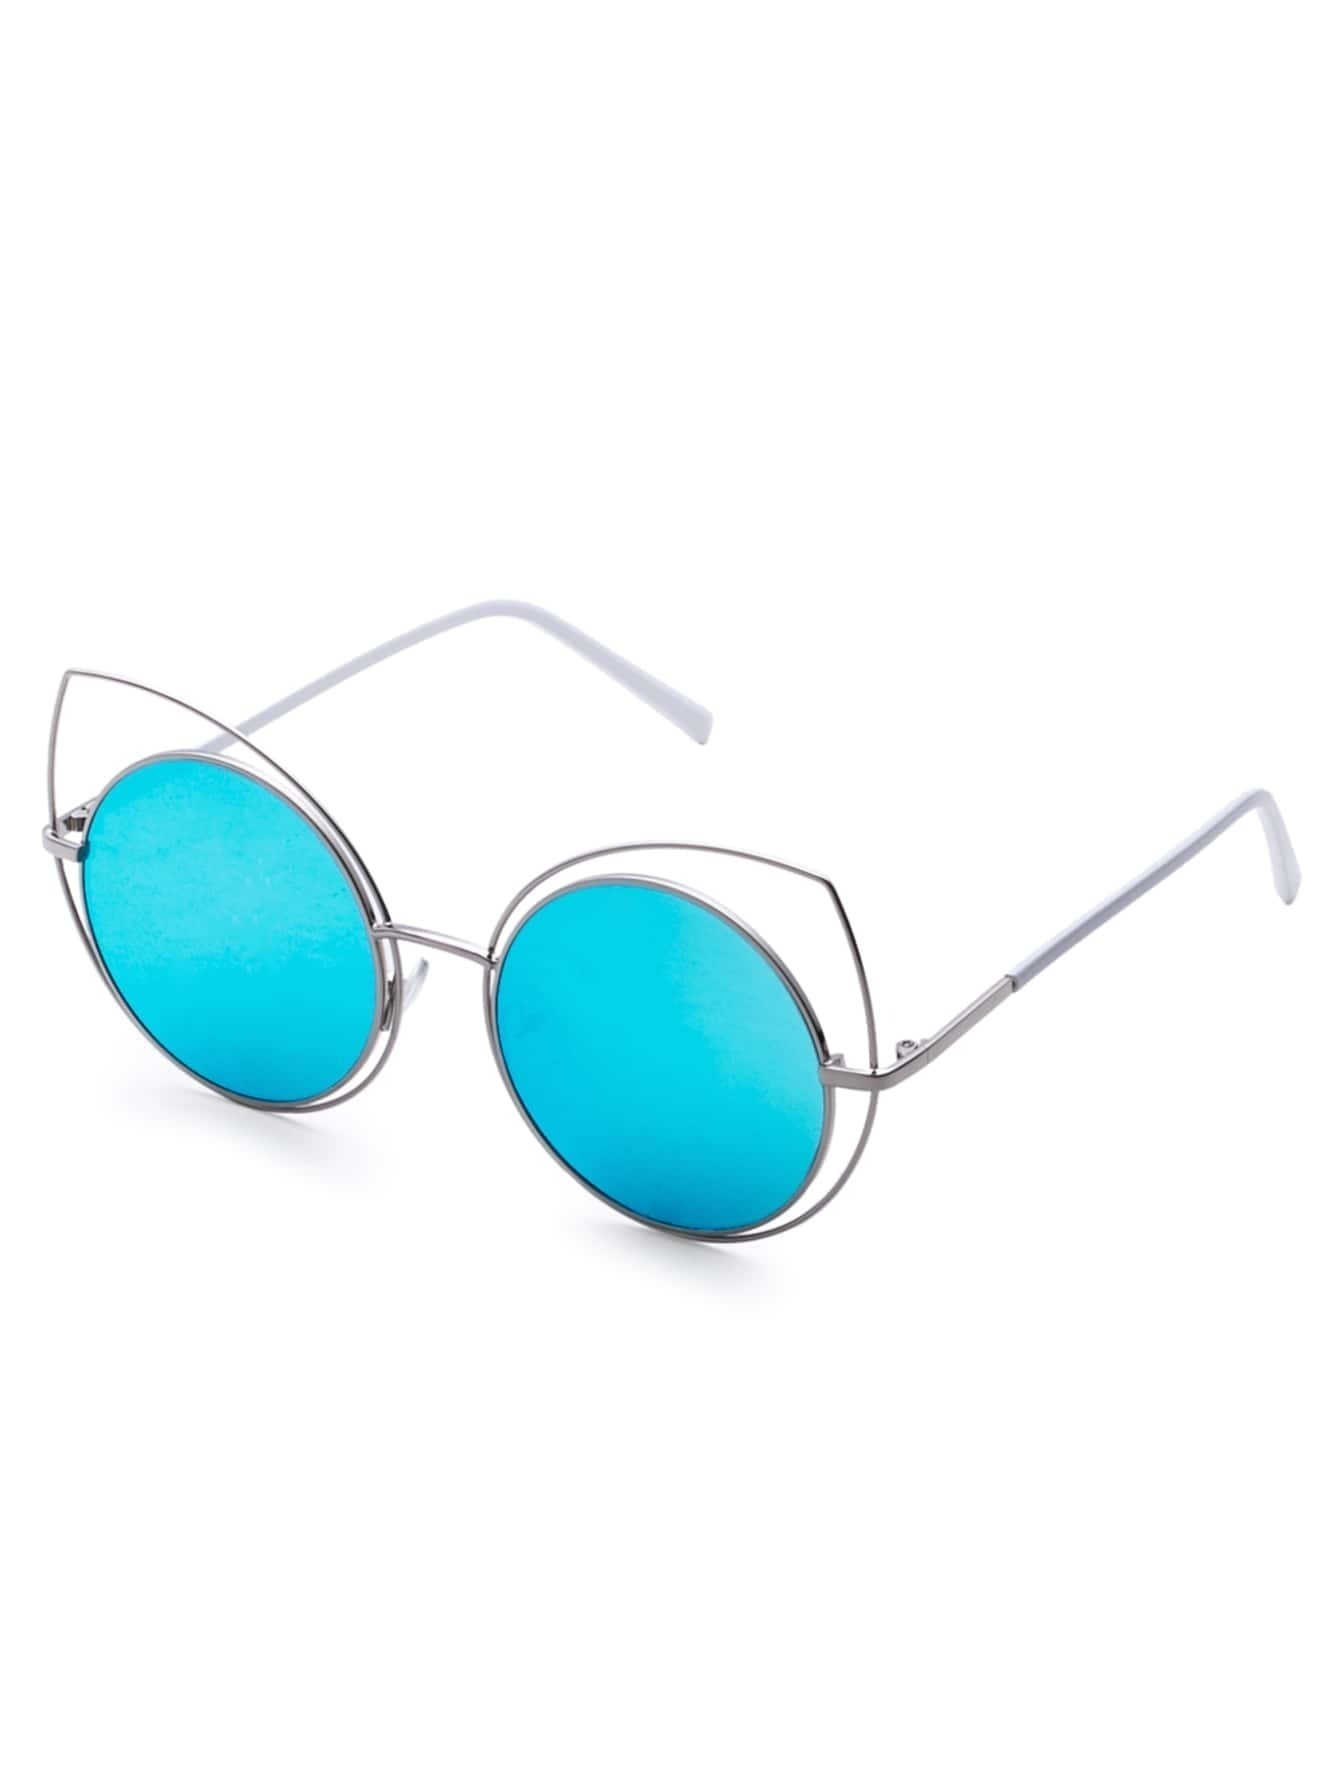 Gold Frame Blue Lens Cat Eye Sunglasses